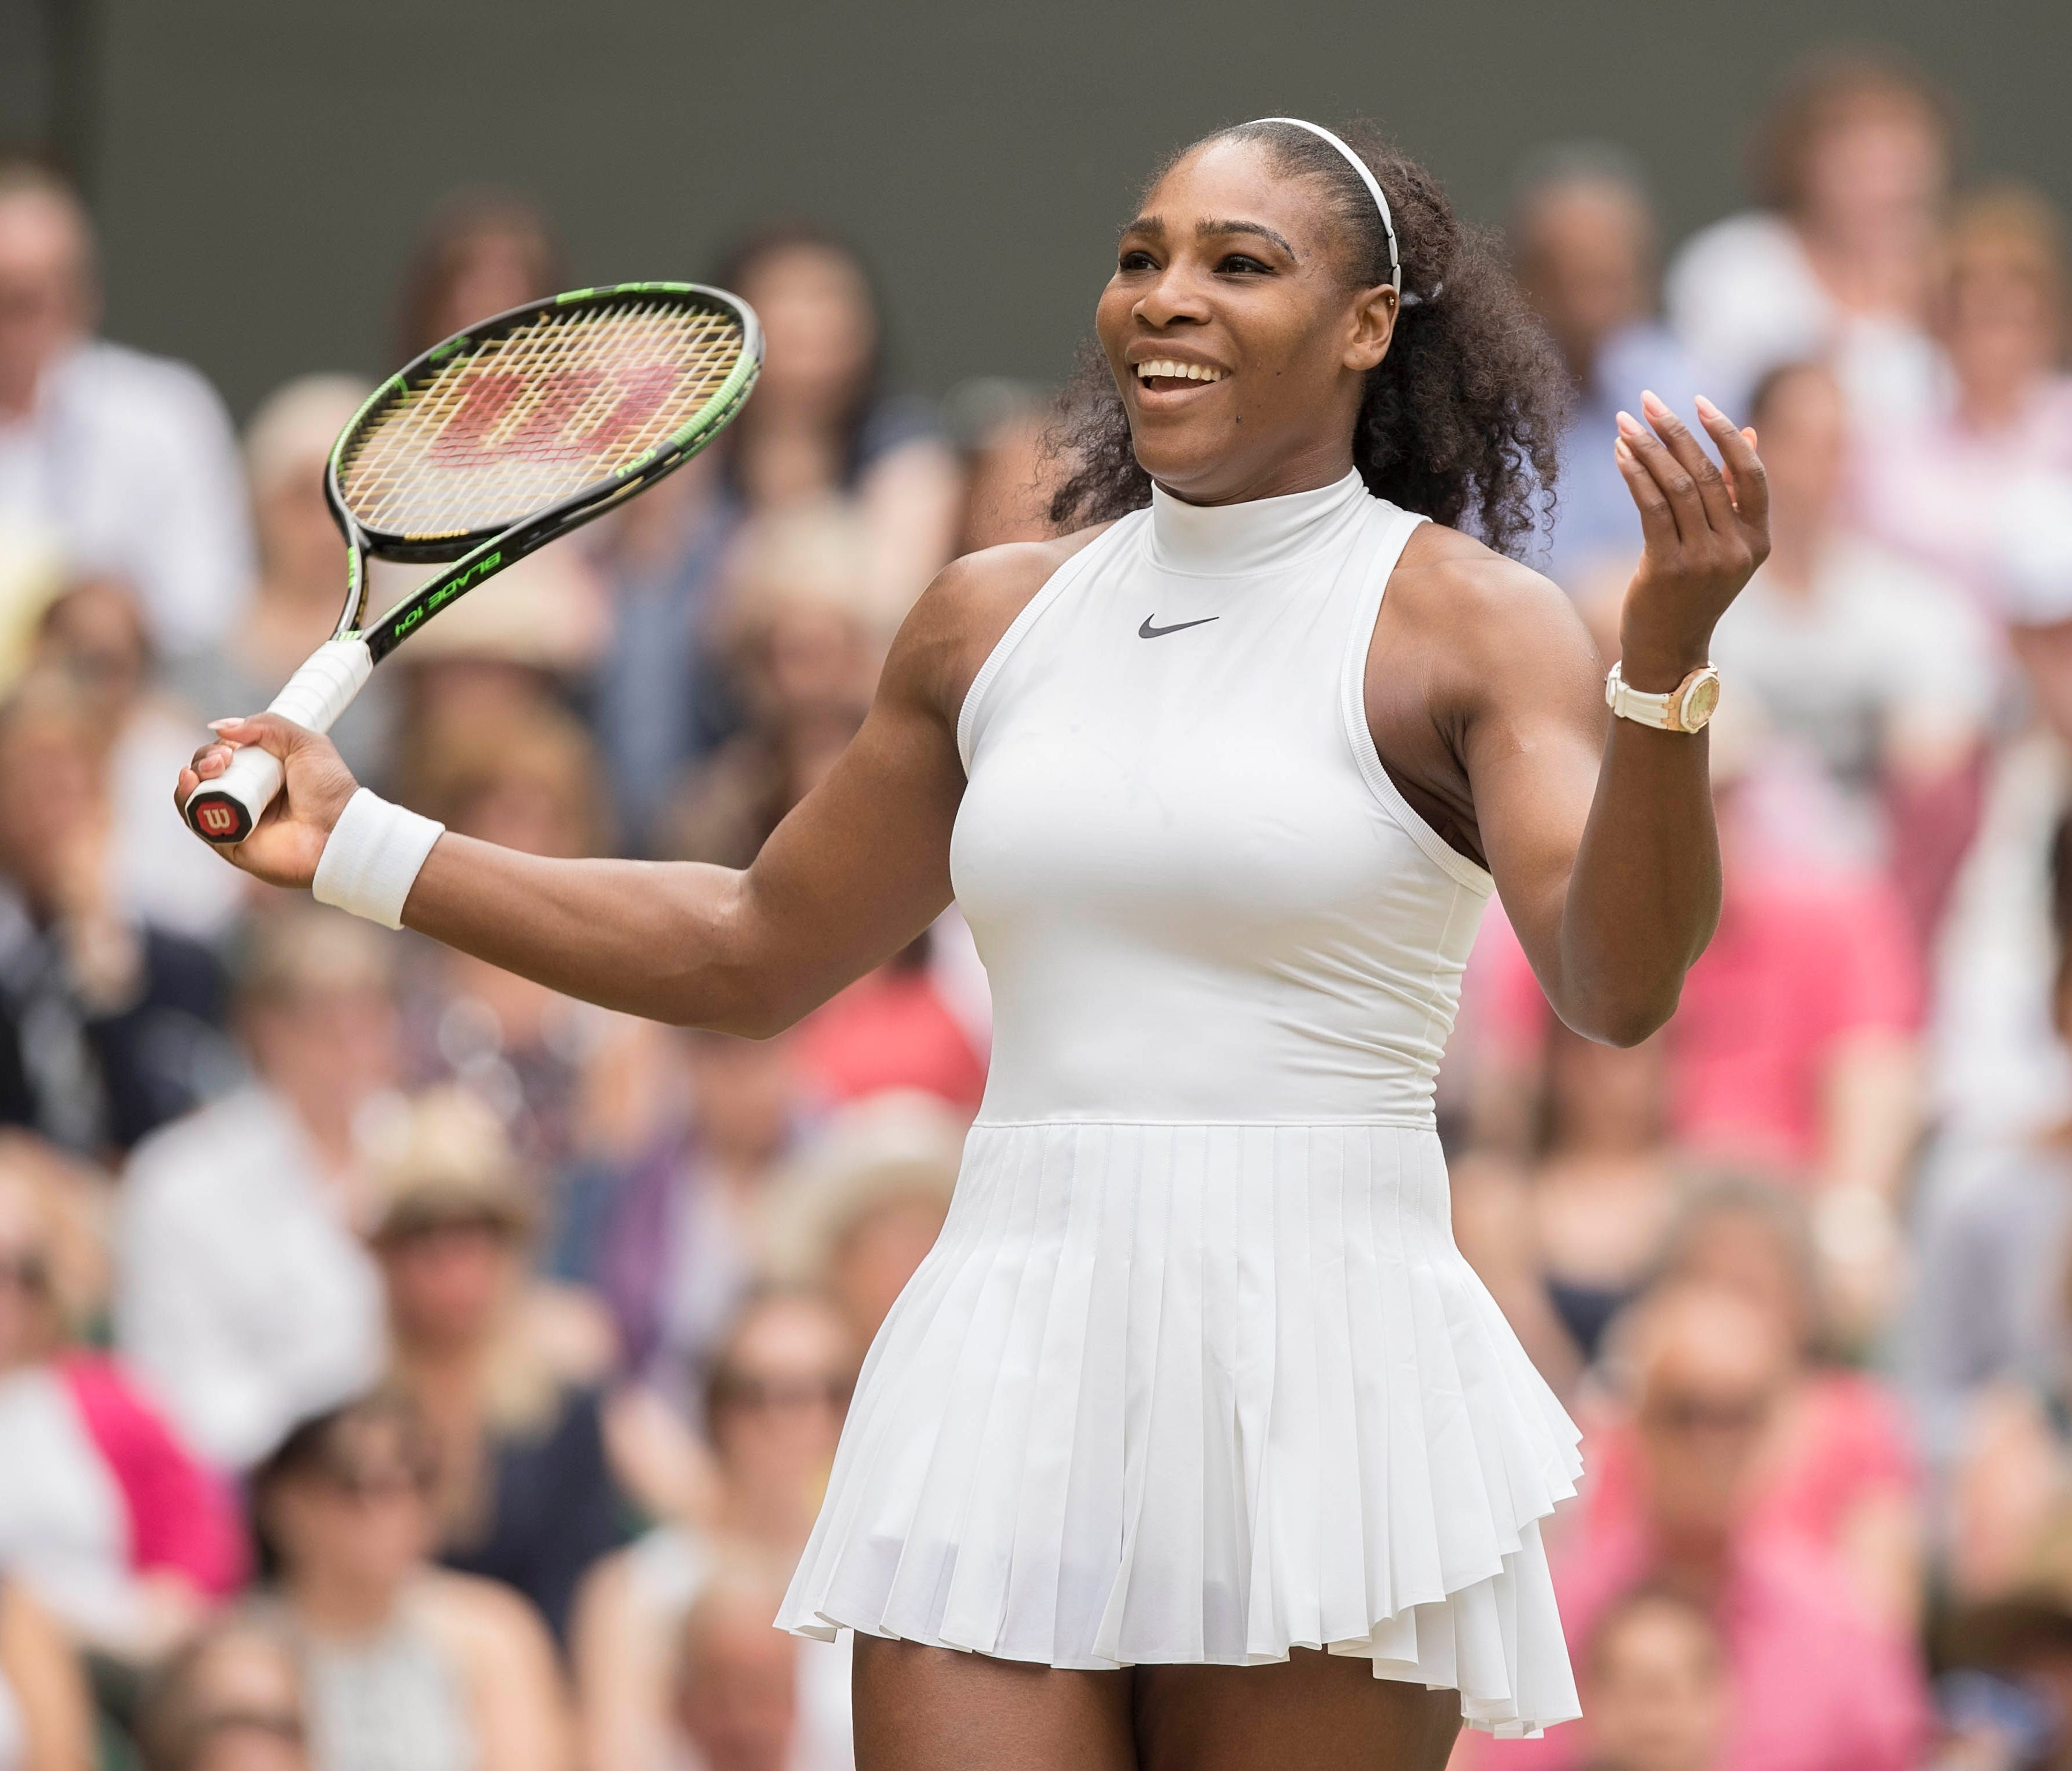 In a file photo from July 9, 2016, Serena Williams (USA) reacts during her match against Angelique Kerber (GER) during Wimbledon.